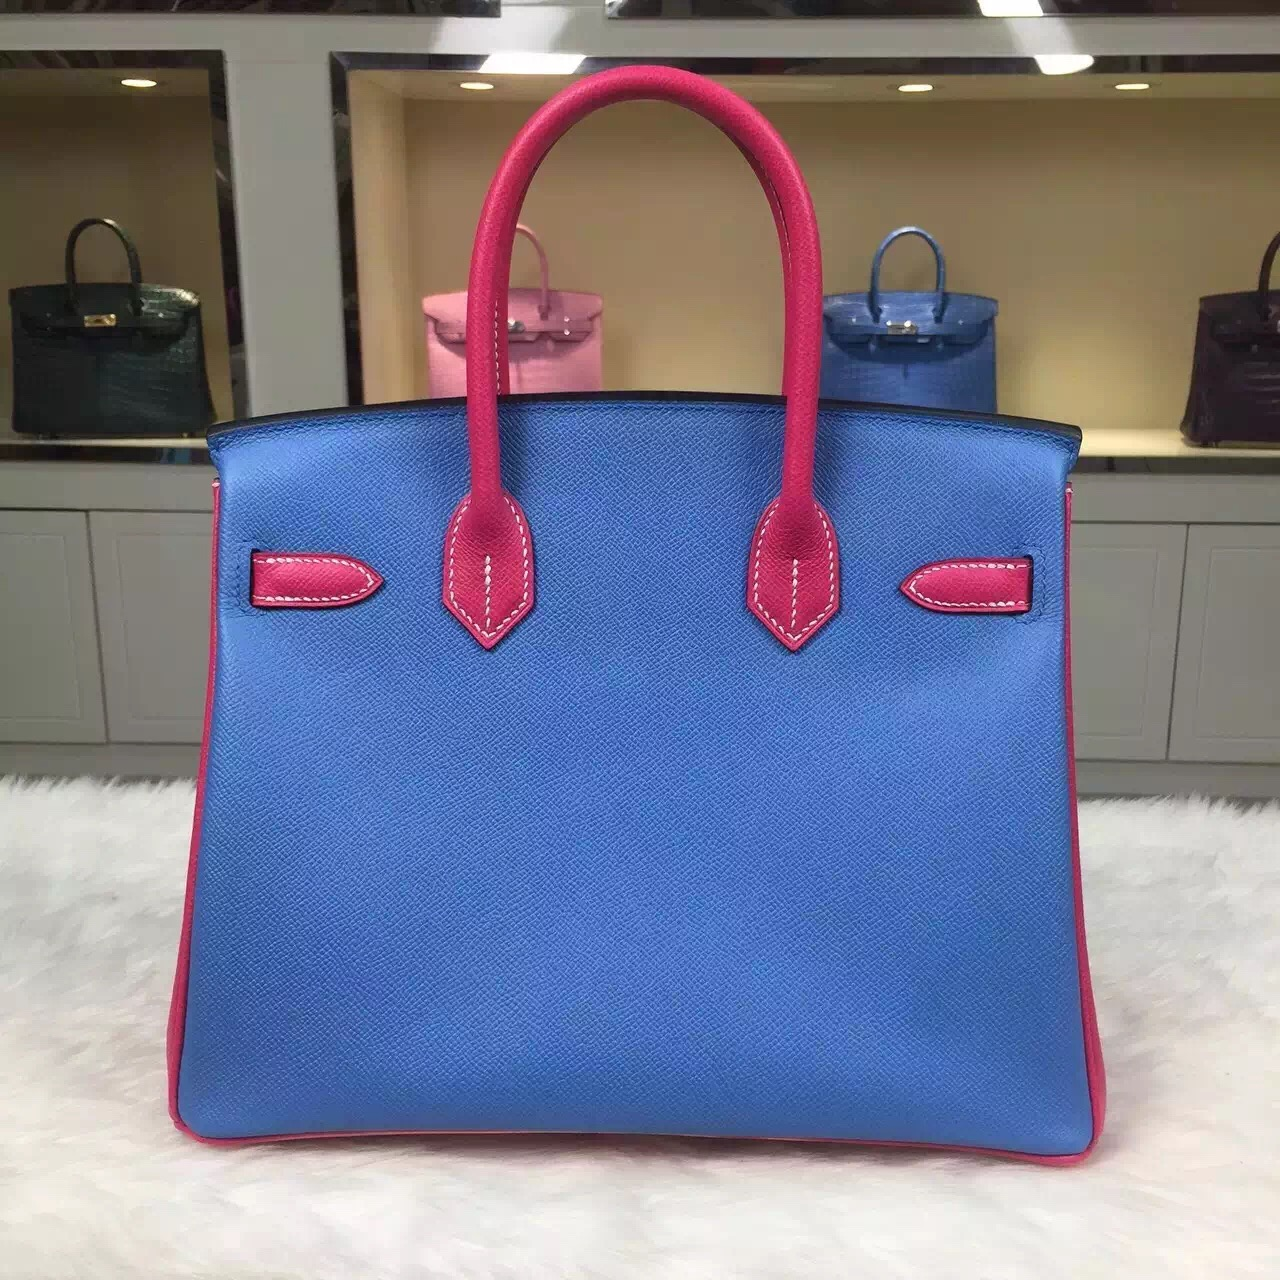 New Pretty Hermes Birkin Bag 30CM Color-blocking Epsom Leather Women's Tote Bag